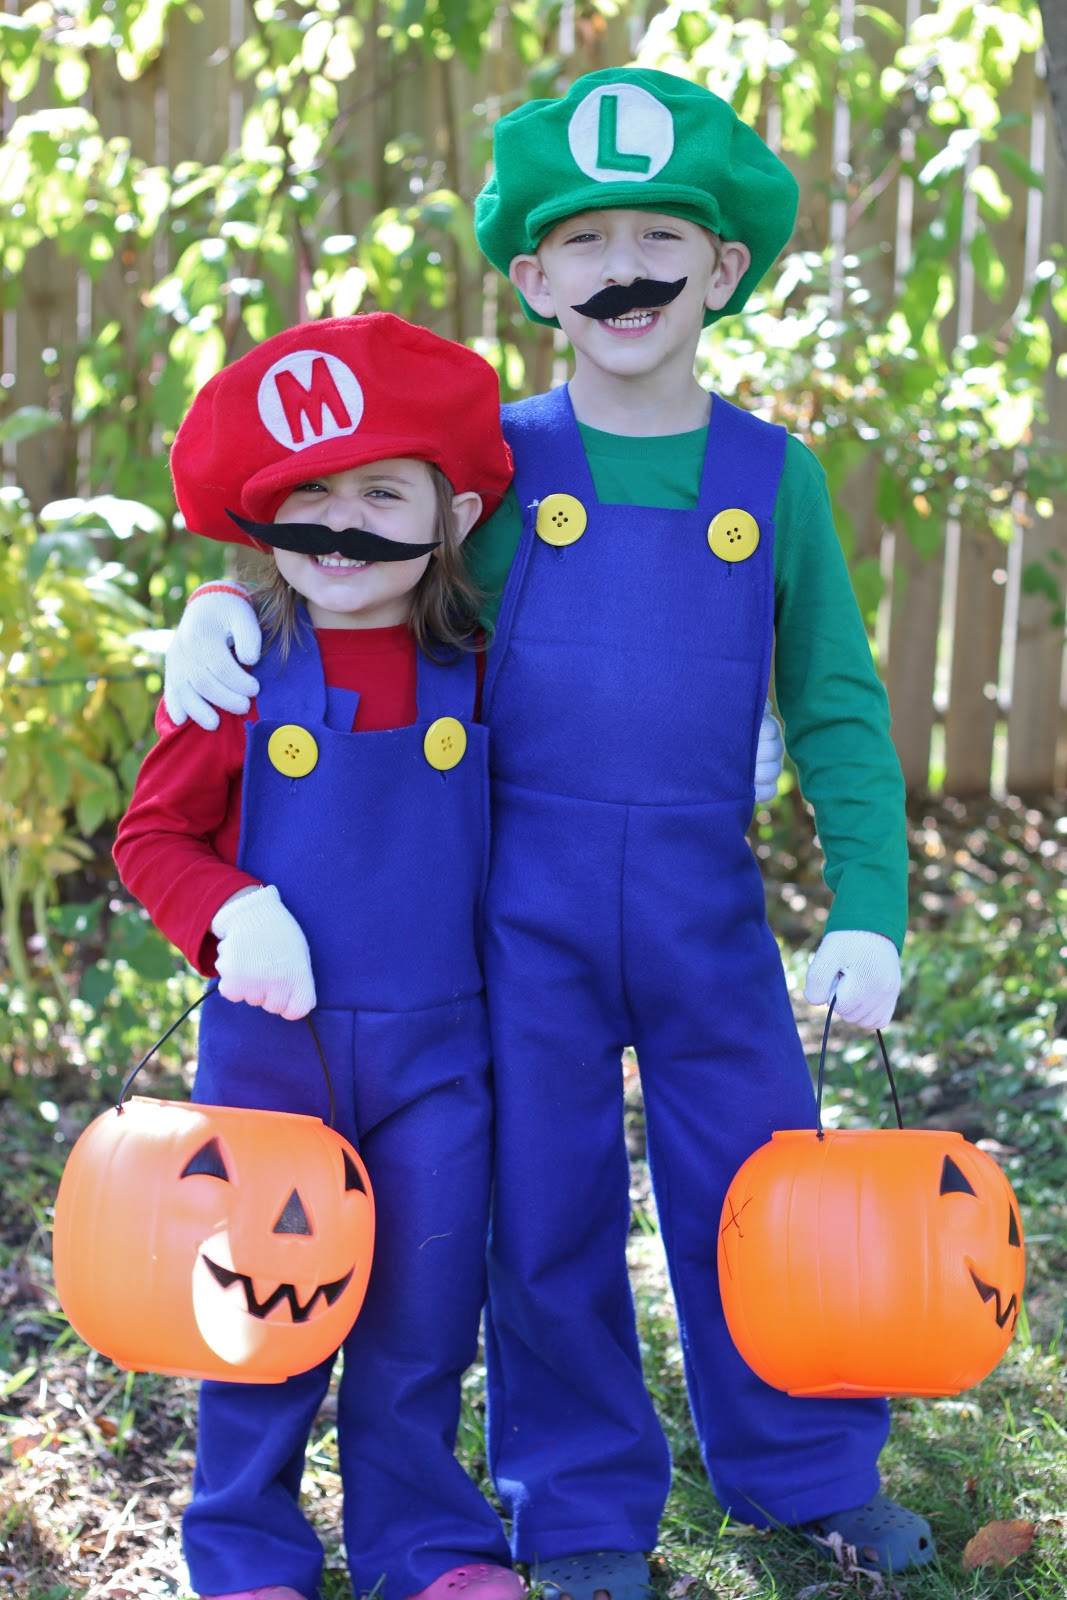 Best ideas about Mario DIY Costume . Save or Pin How to Make Mario and Luigi Costumes Tutorial Smashed Now.